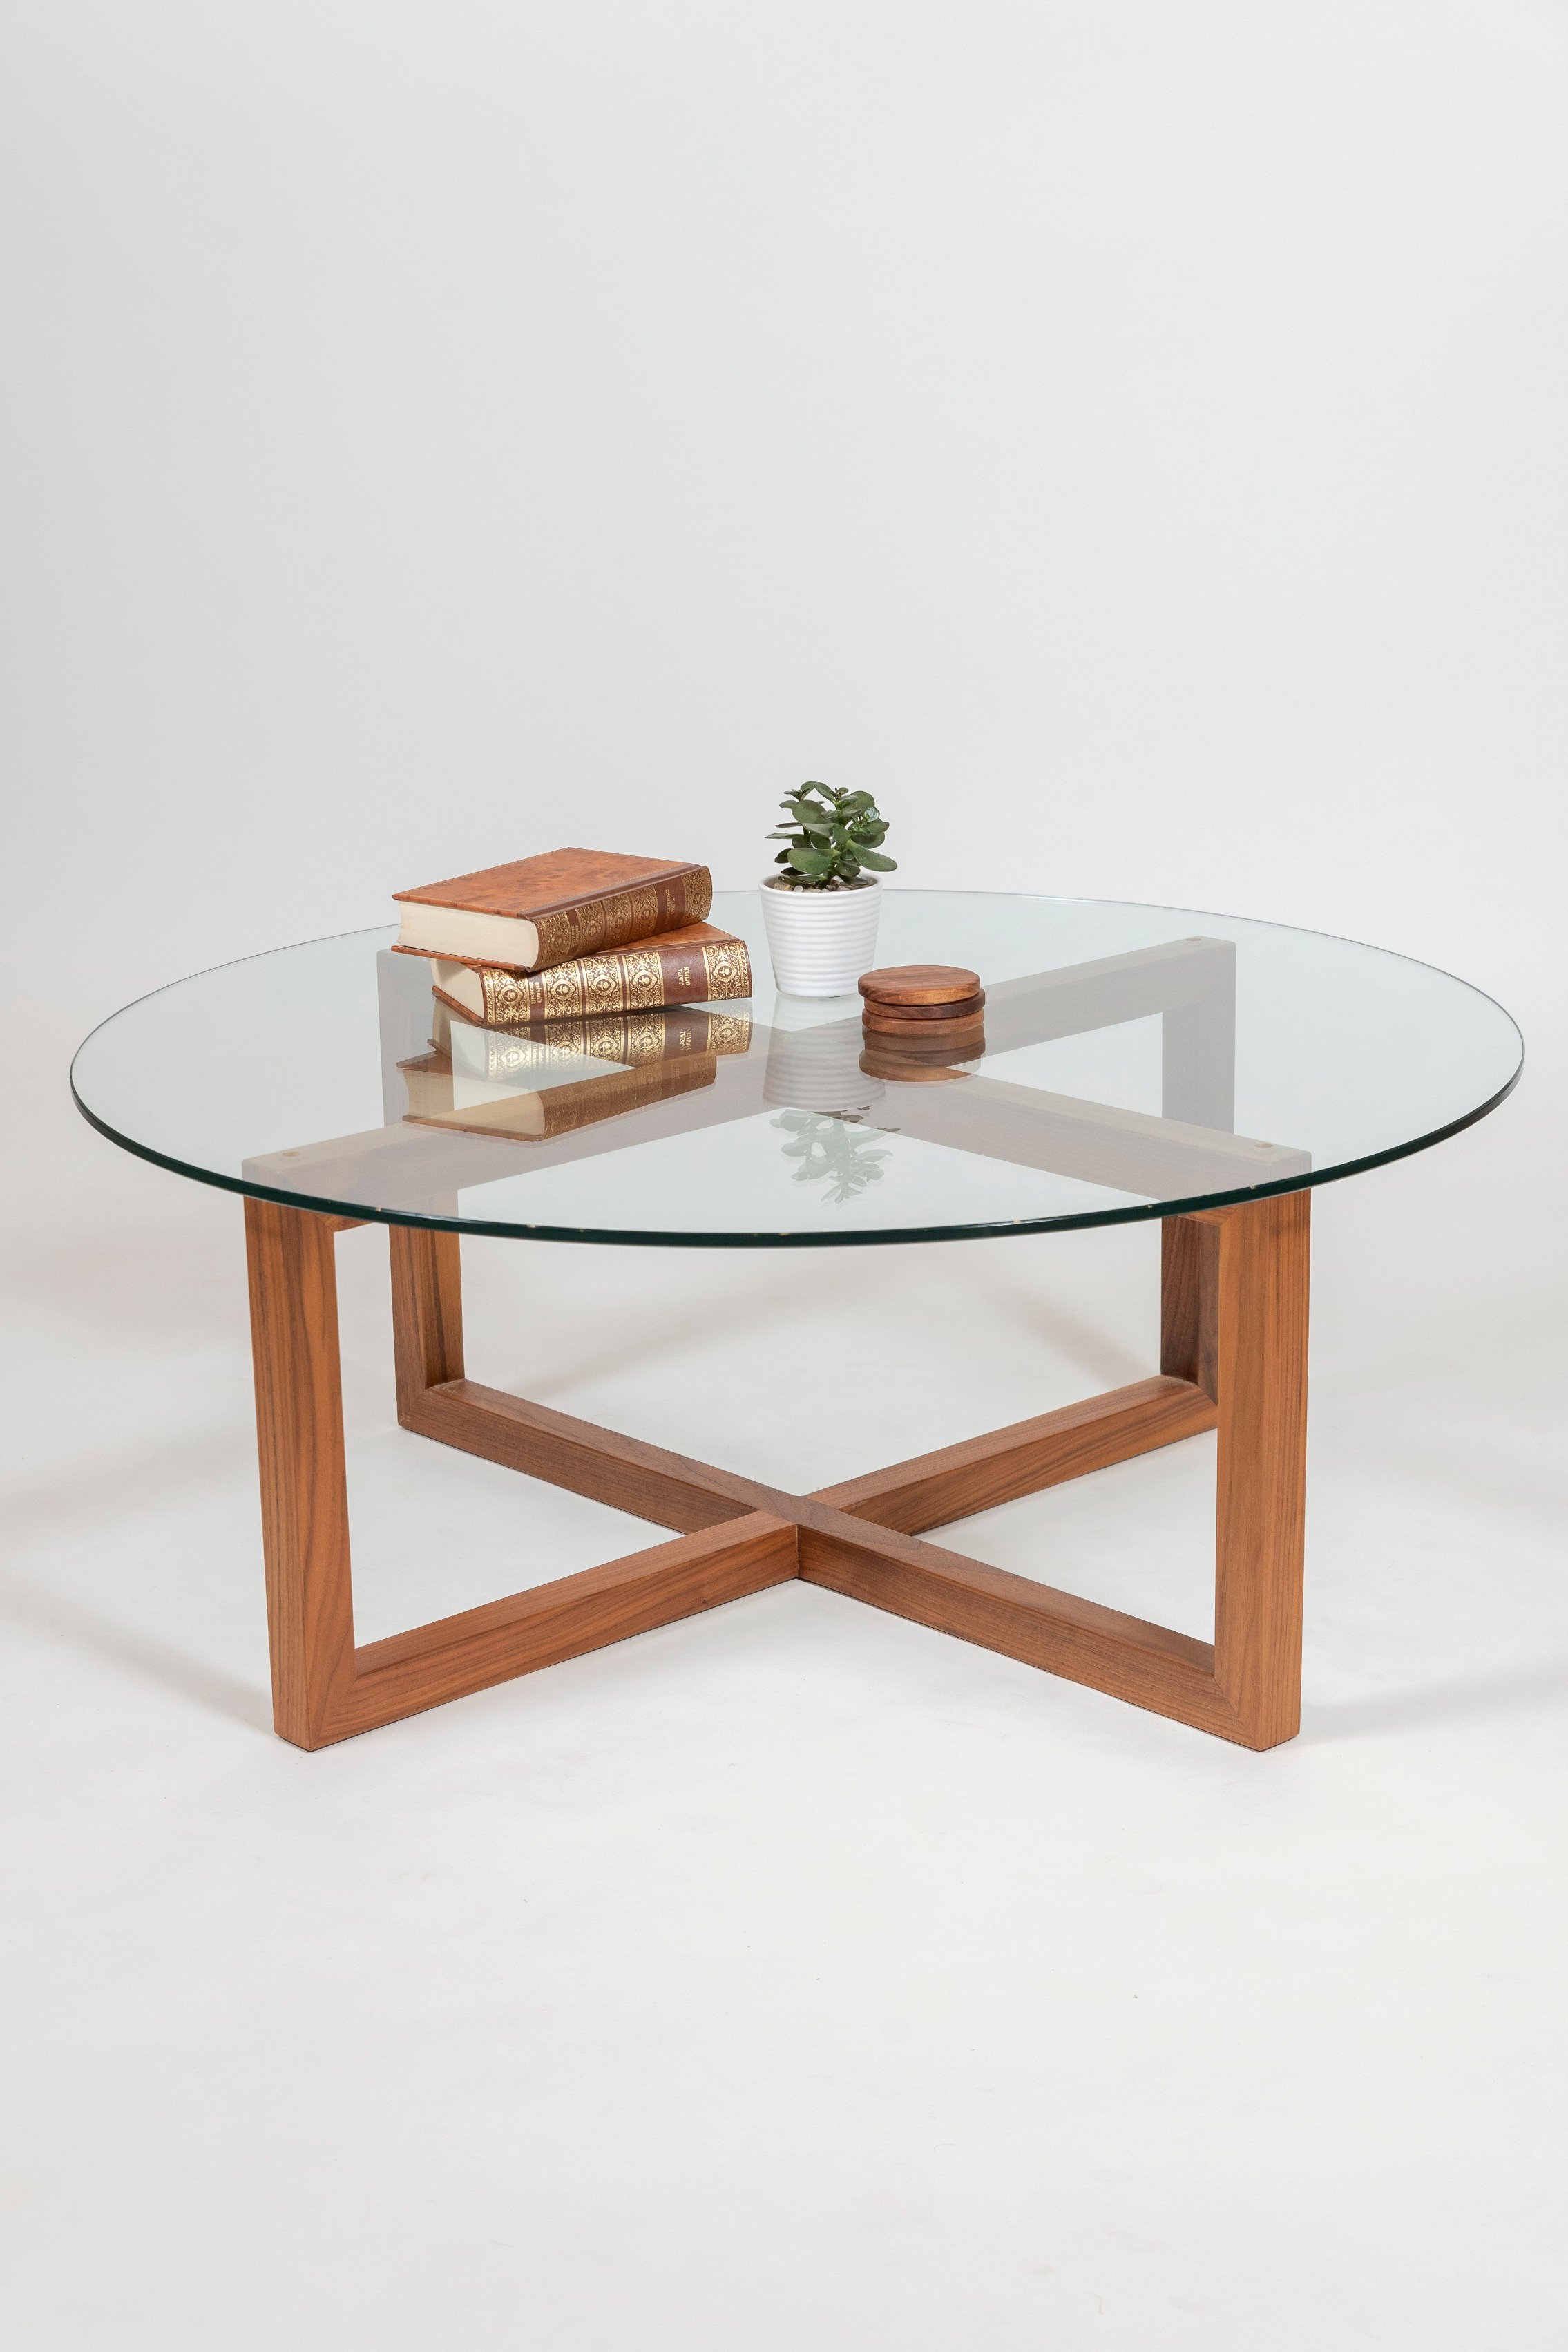 Best And Newest Baxter Coffee Table – Buywood Furniture Intended For Brisbane Oval Coffee Tables (View 4 of 20)